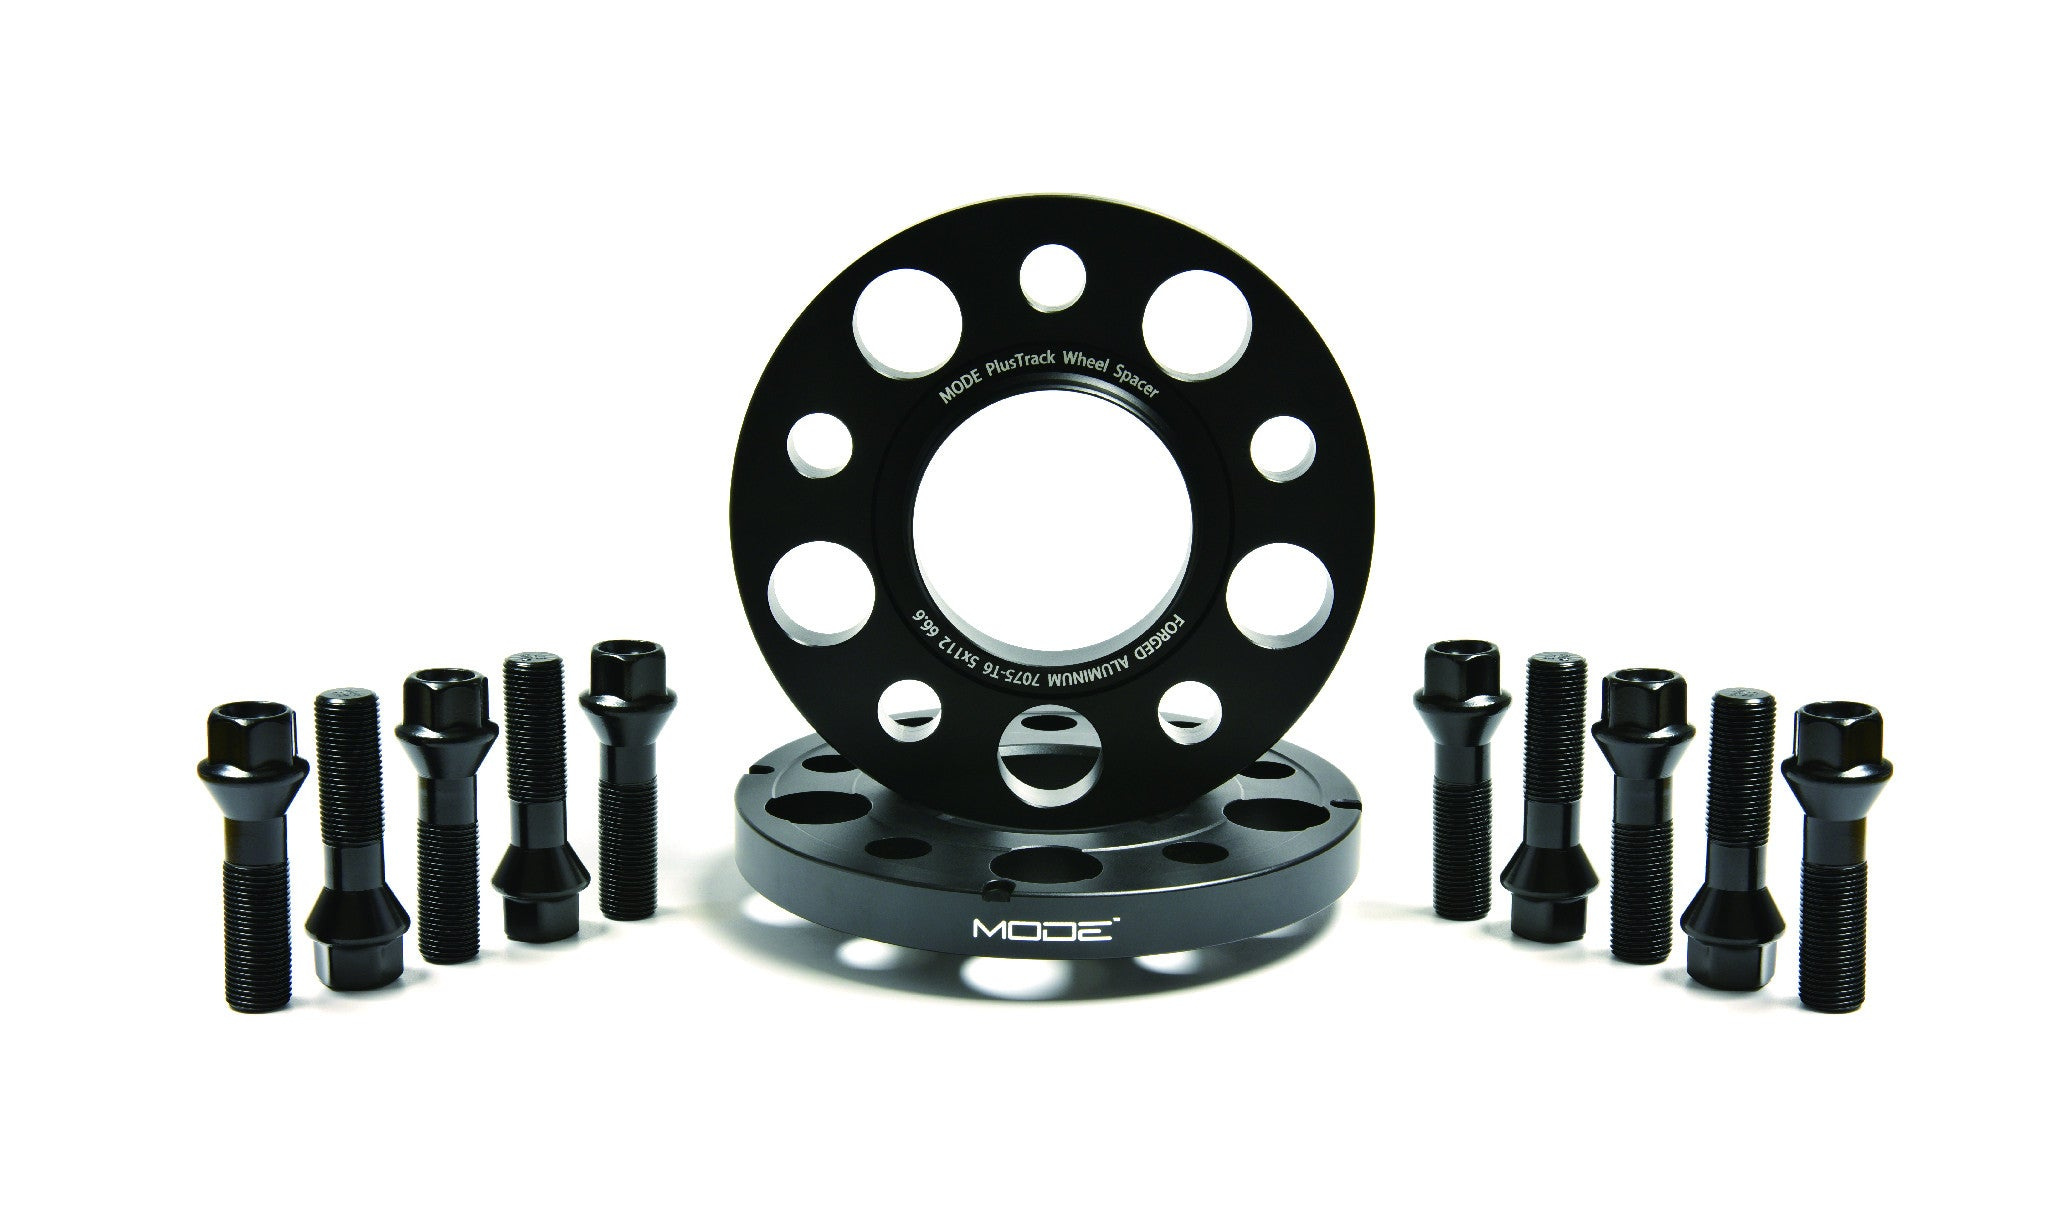 MODE PlusTrack Wheel Spacer Kit 15mm BMW (G-Series) - MODE Auto Concepts